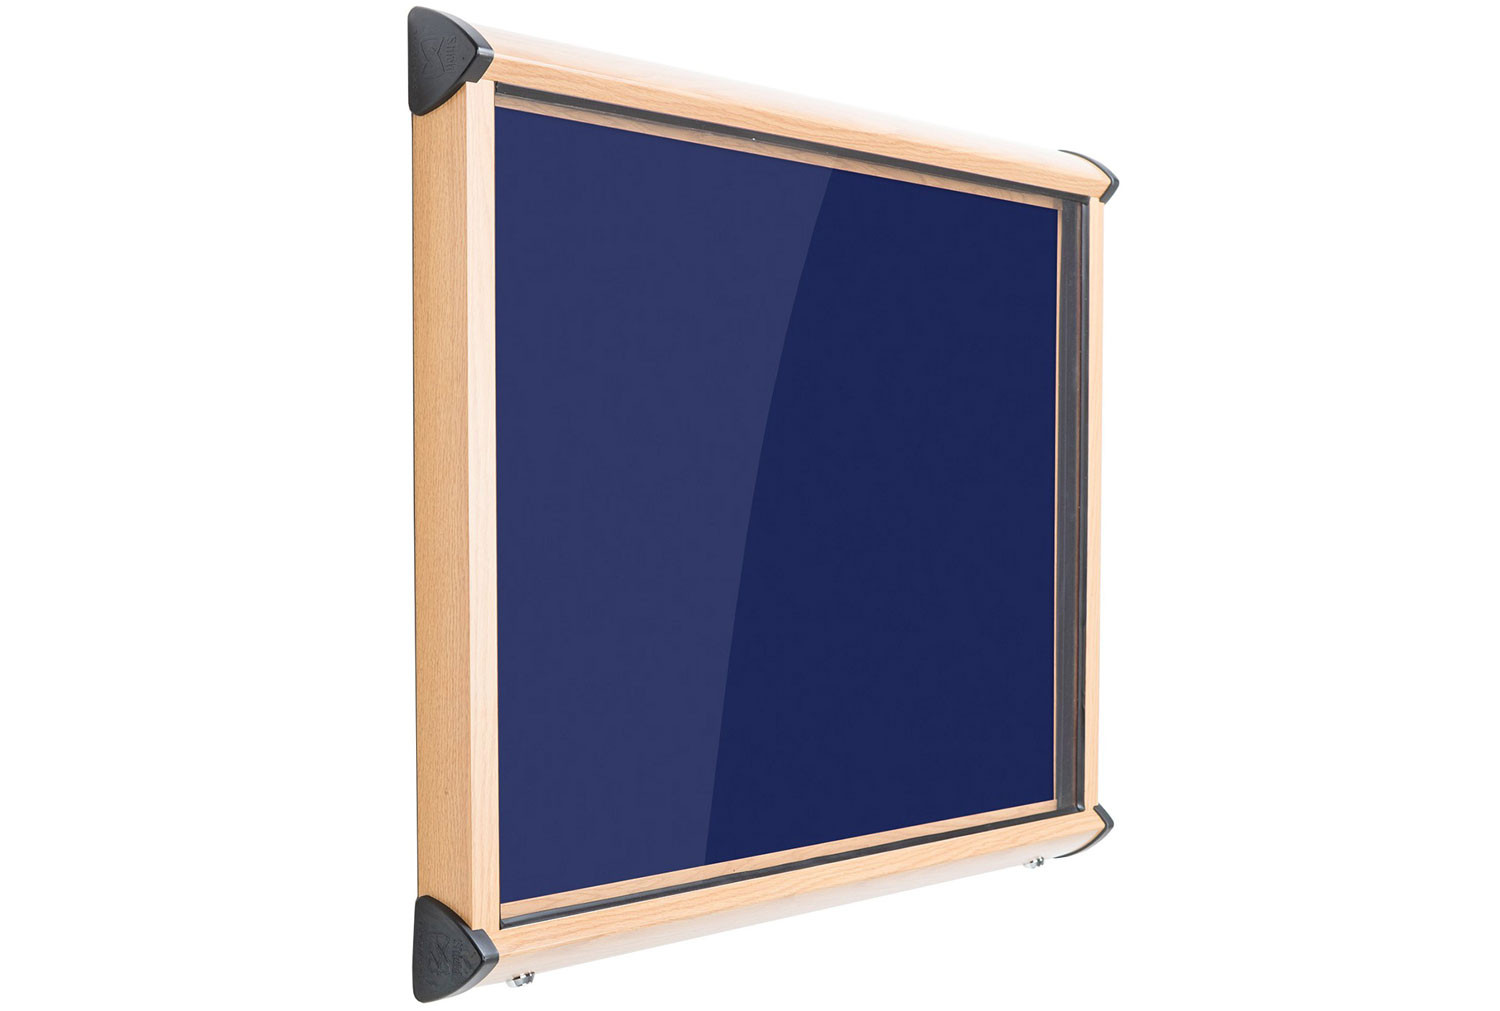 Shield Wood Effect Showcase With Top Hinged Doors